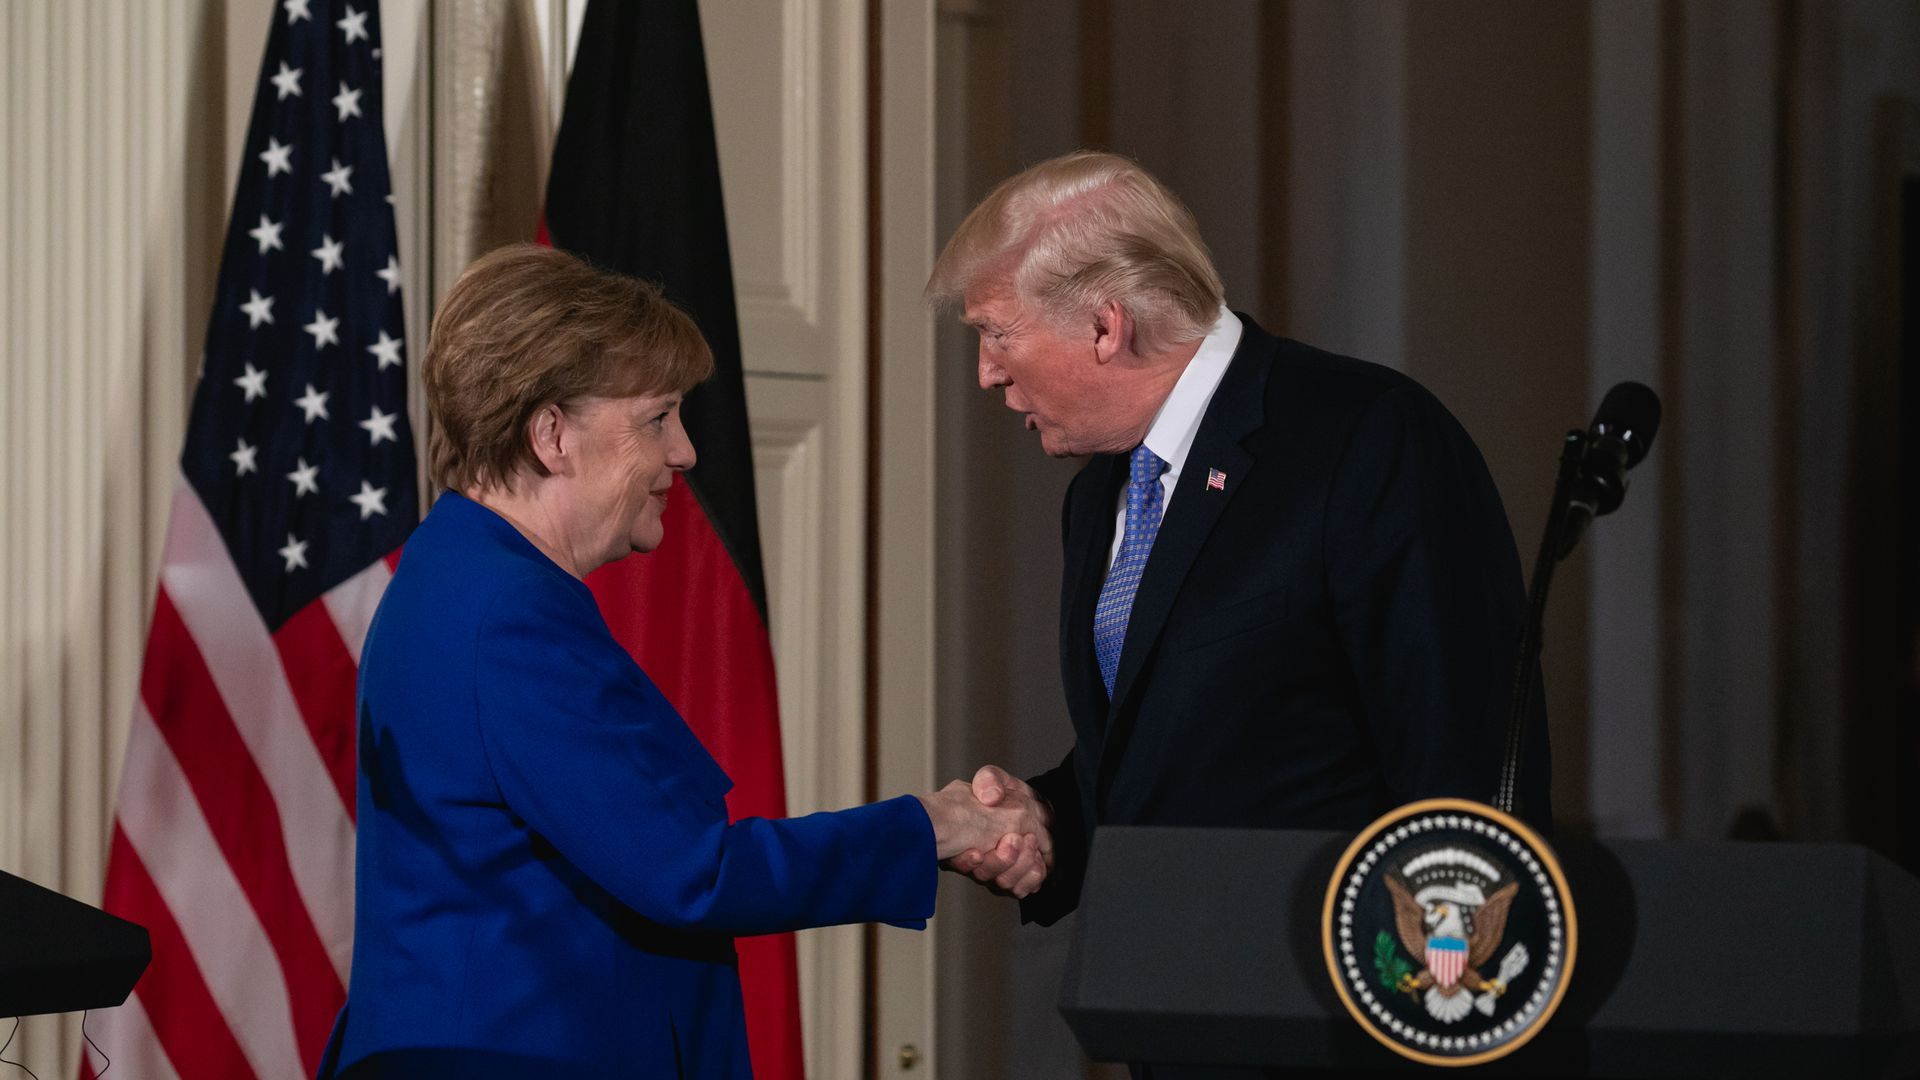 Donald Trump shakes German Chancellor Angela Merkel's hand during a meeting in Washington